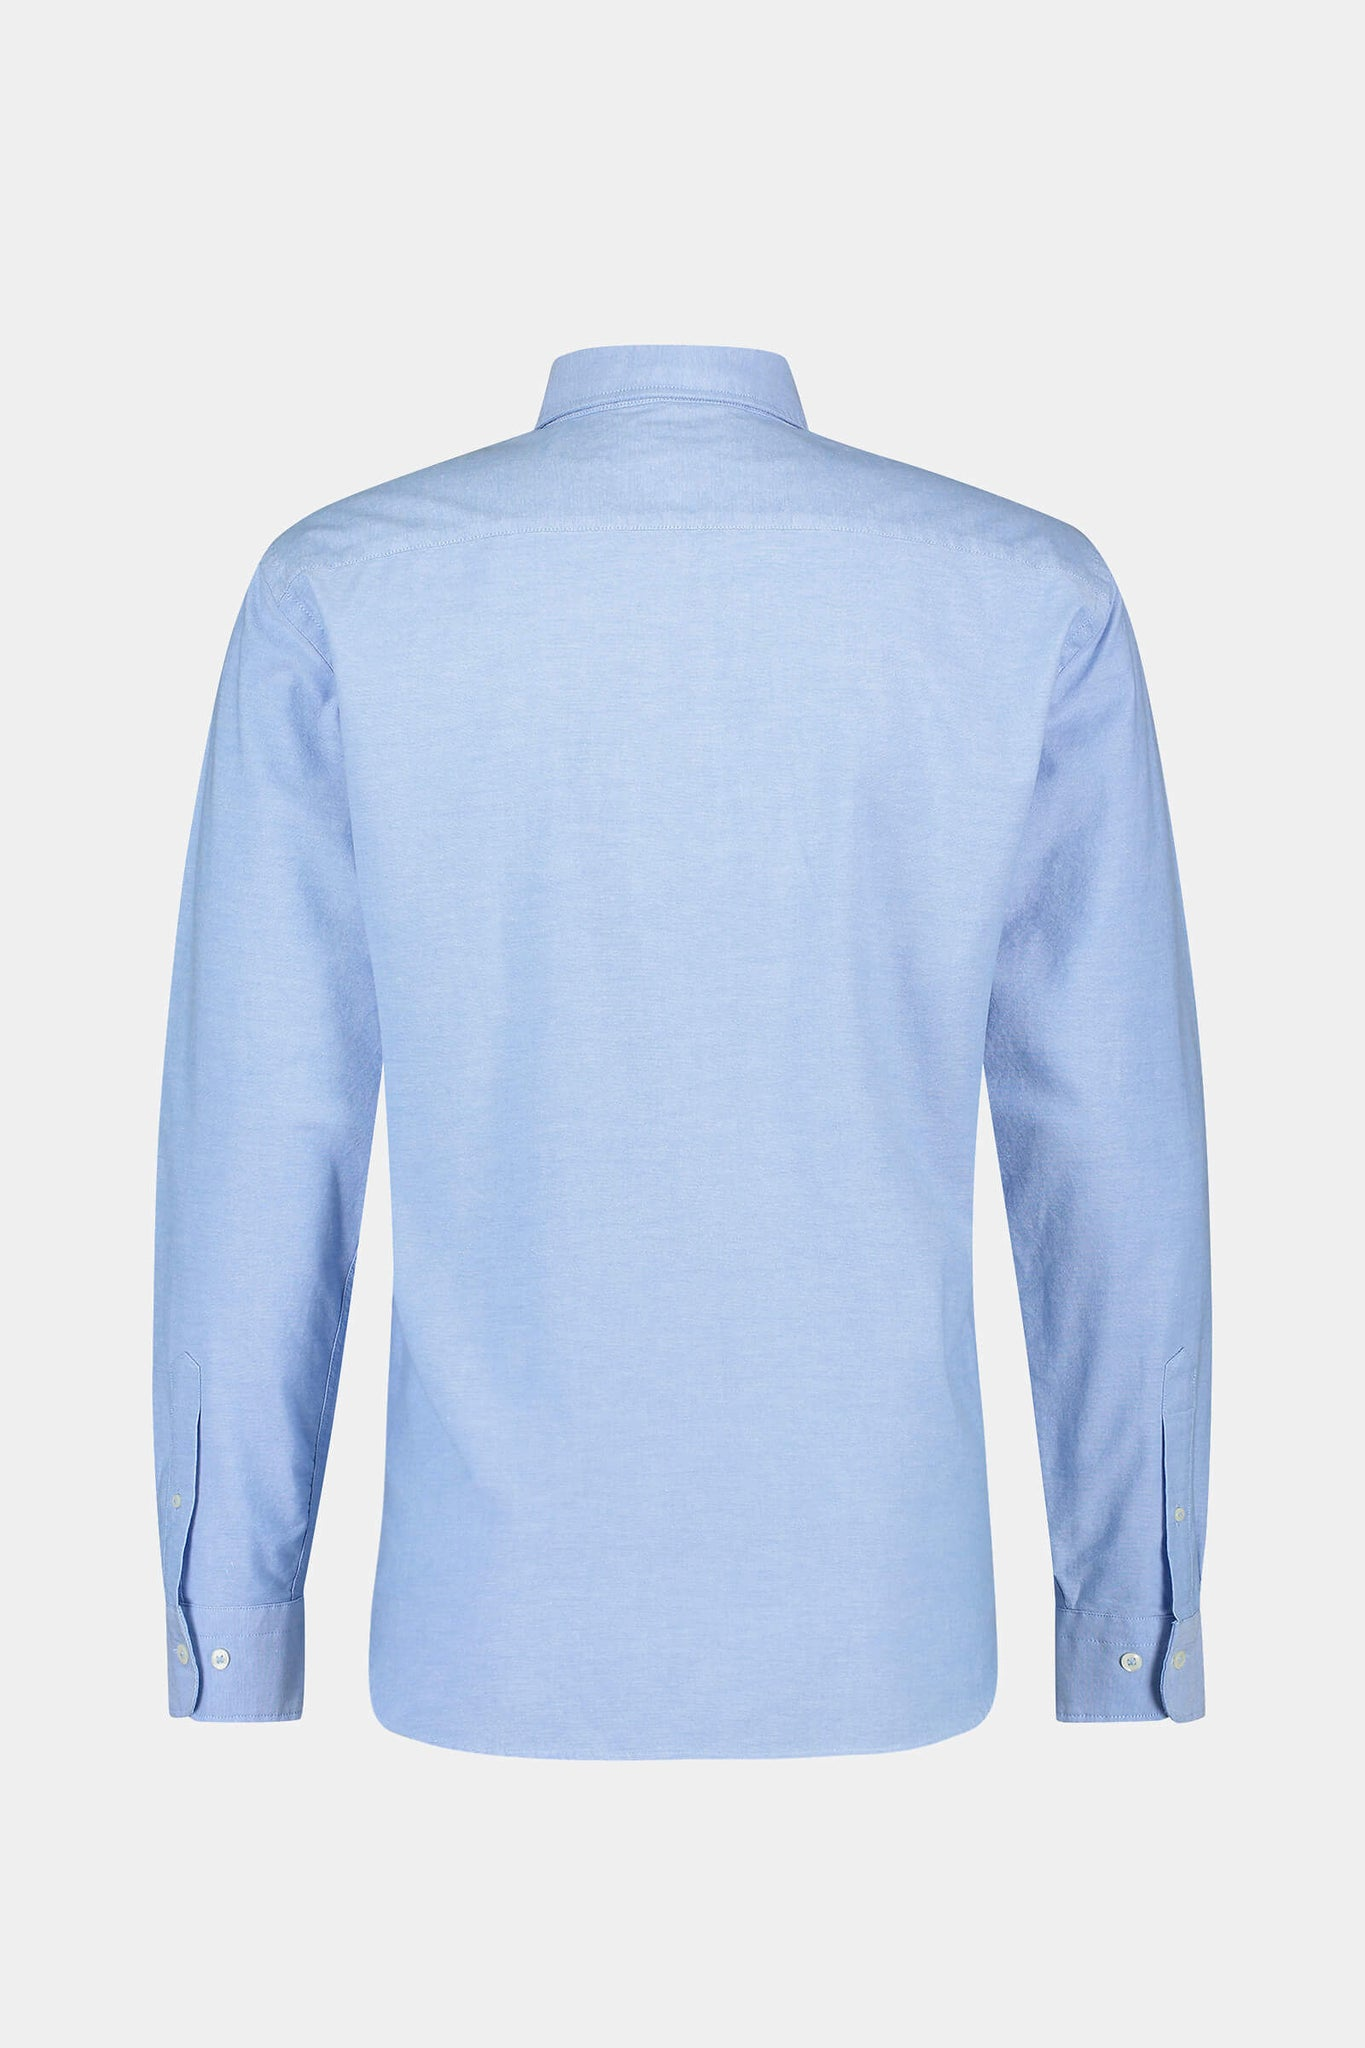 McG Regular fit Oxford shirt stretch